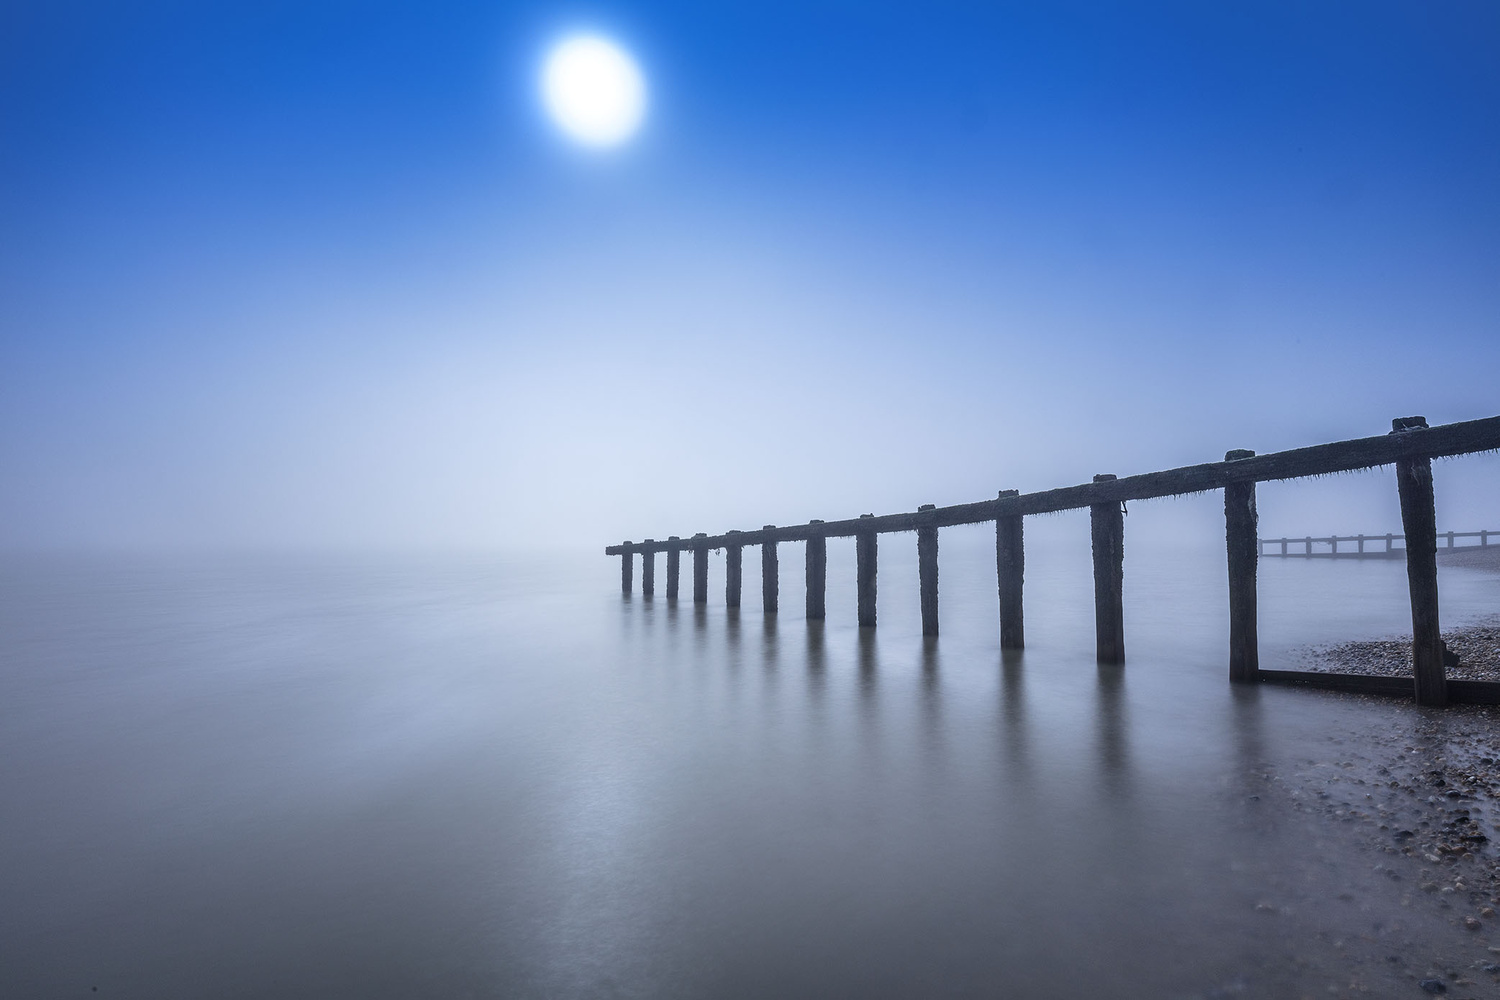 Morning Mist by Roger Davies